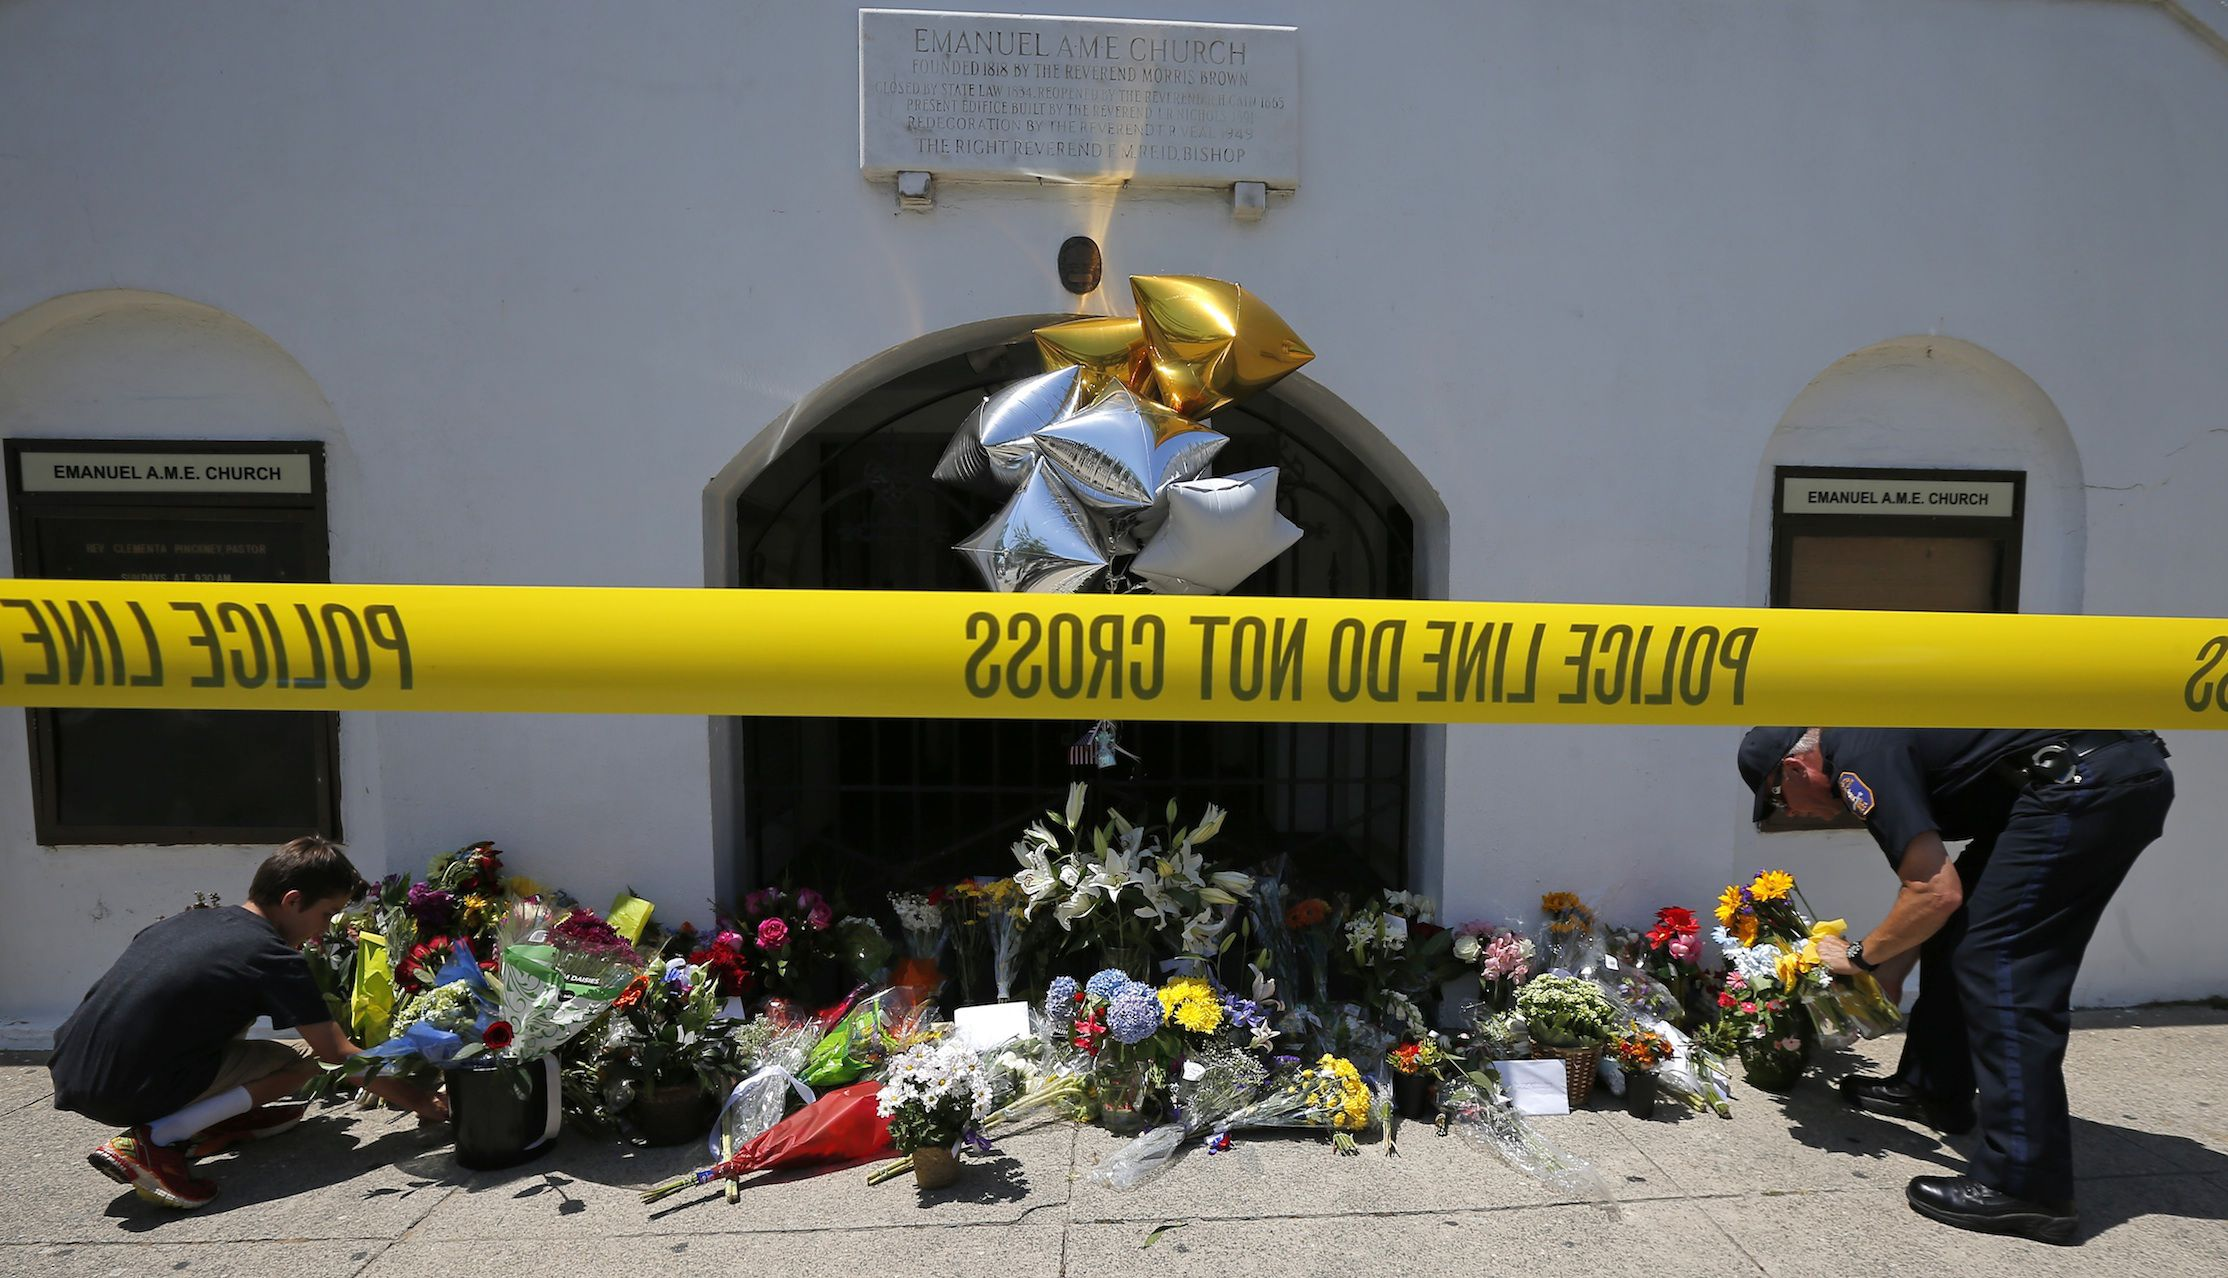 A memorial outside Emanuel African Methodist Episcopal Church in Charleston, South Carolina.